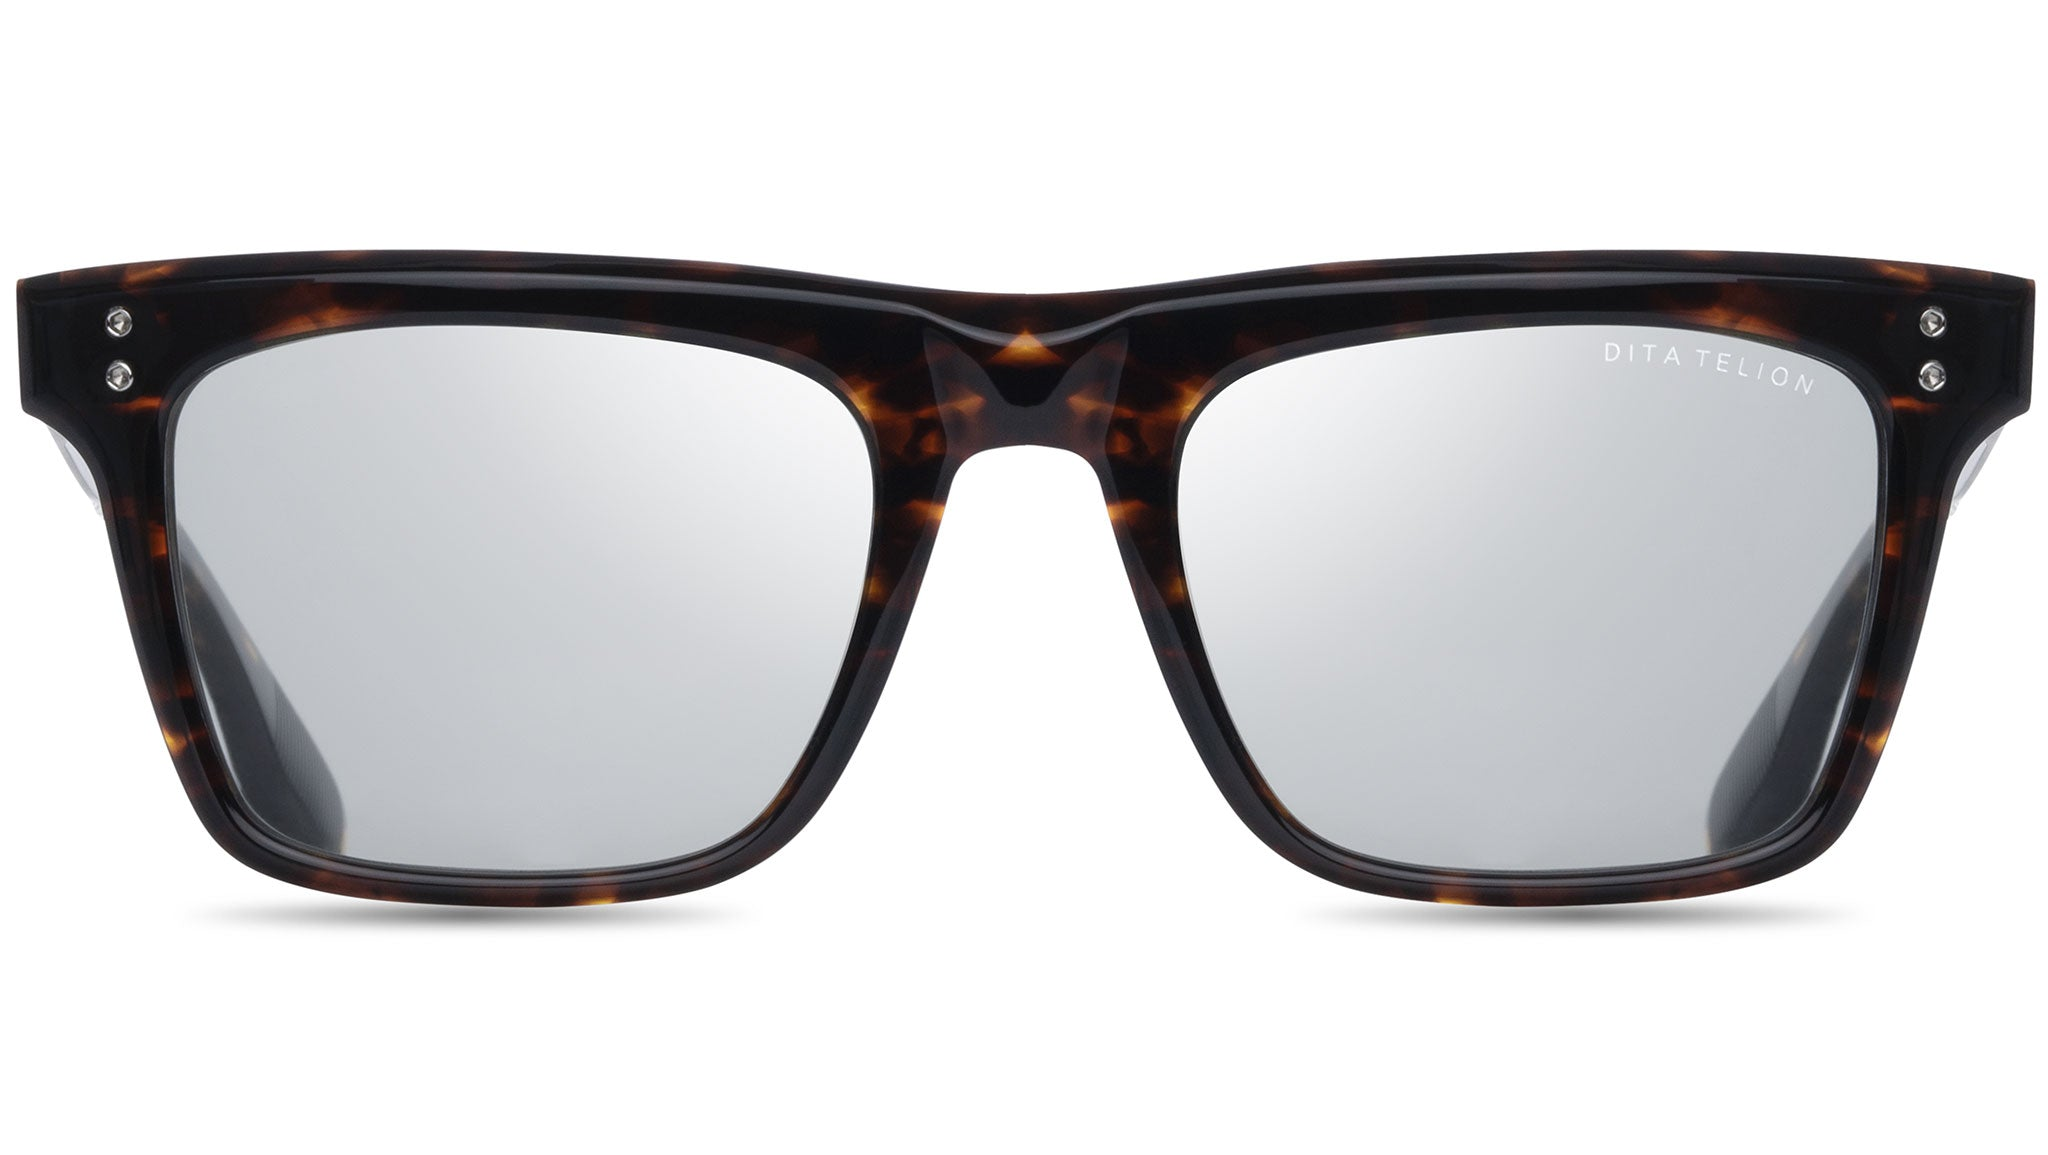 Telion DTS 120 02 tortoise and gunmetal